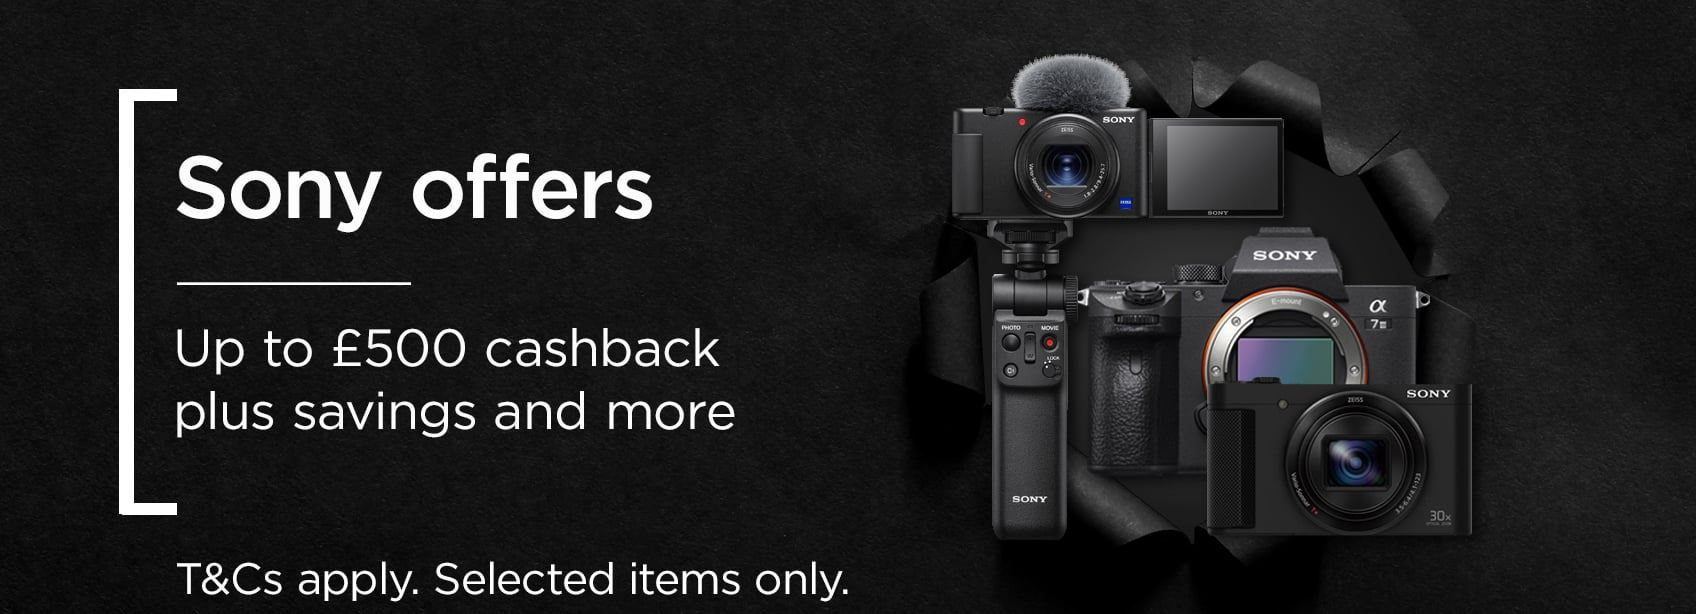 Sony offers - Up to £500 cashback plus savings and more